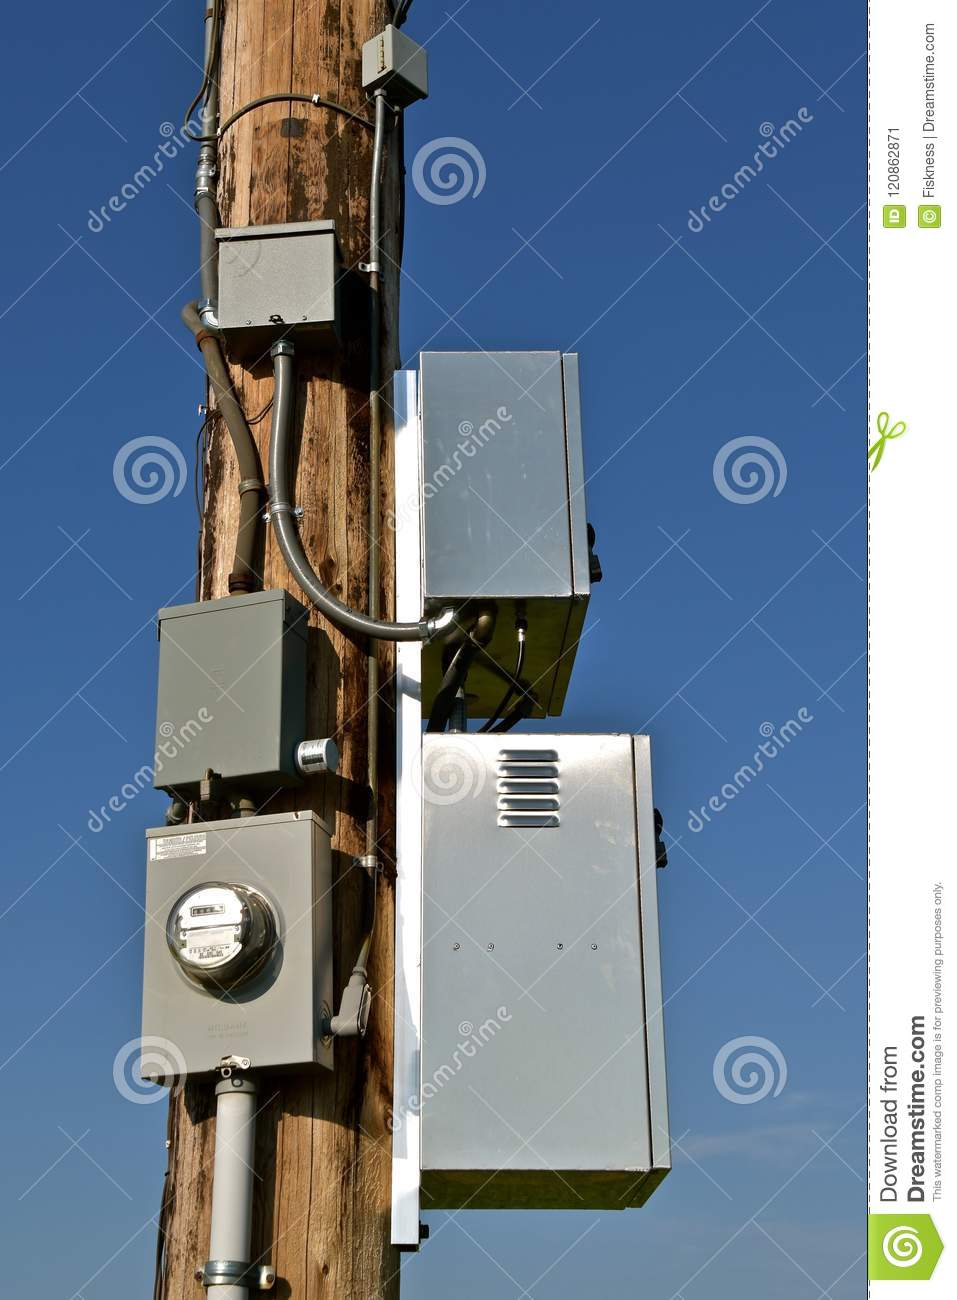 New Electrical Boxes On Wood Utility Pole Stock Image